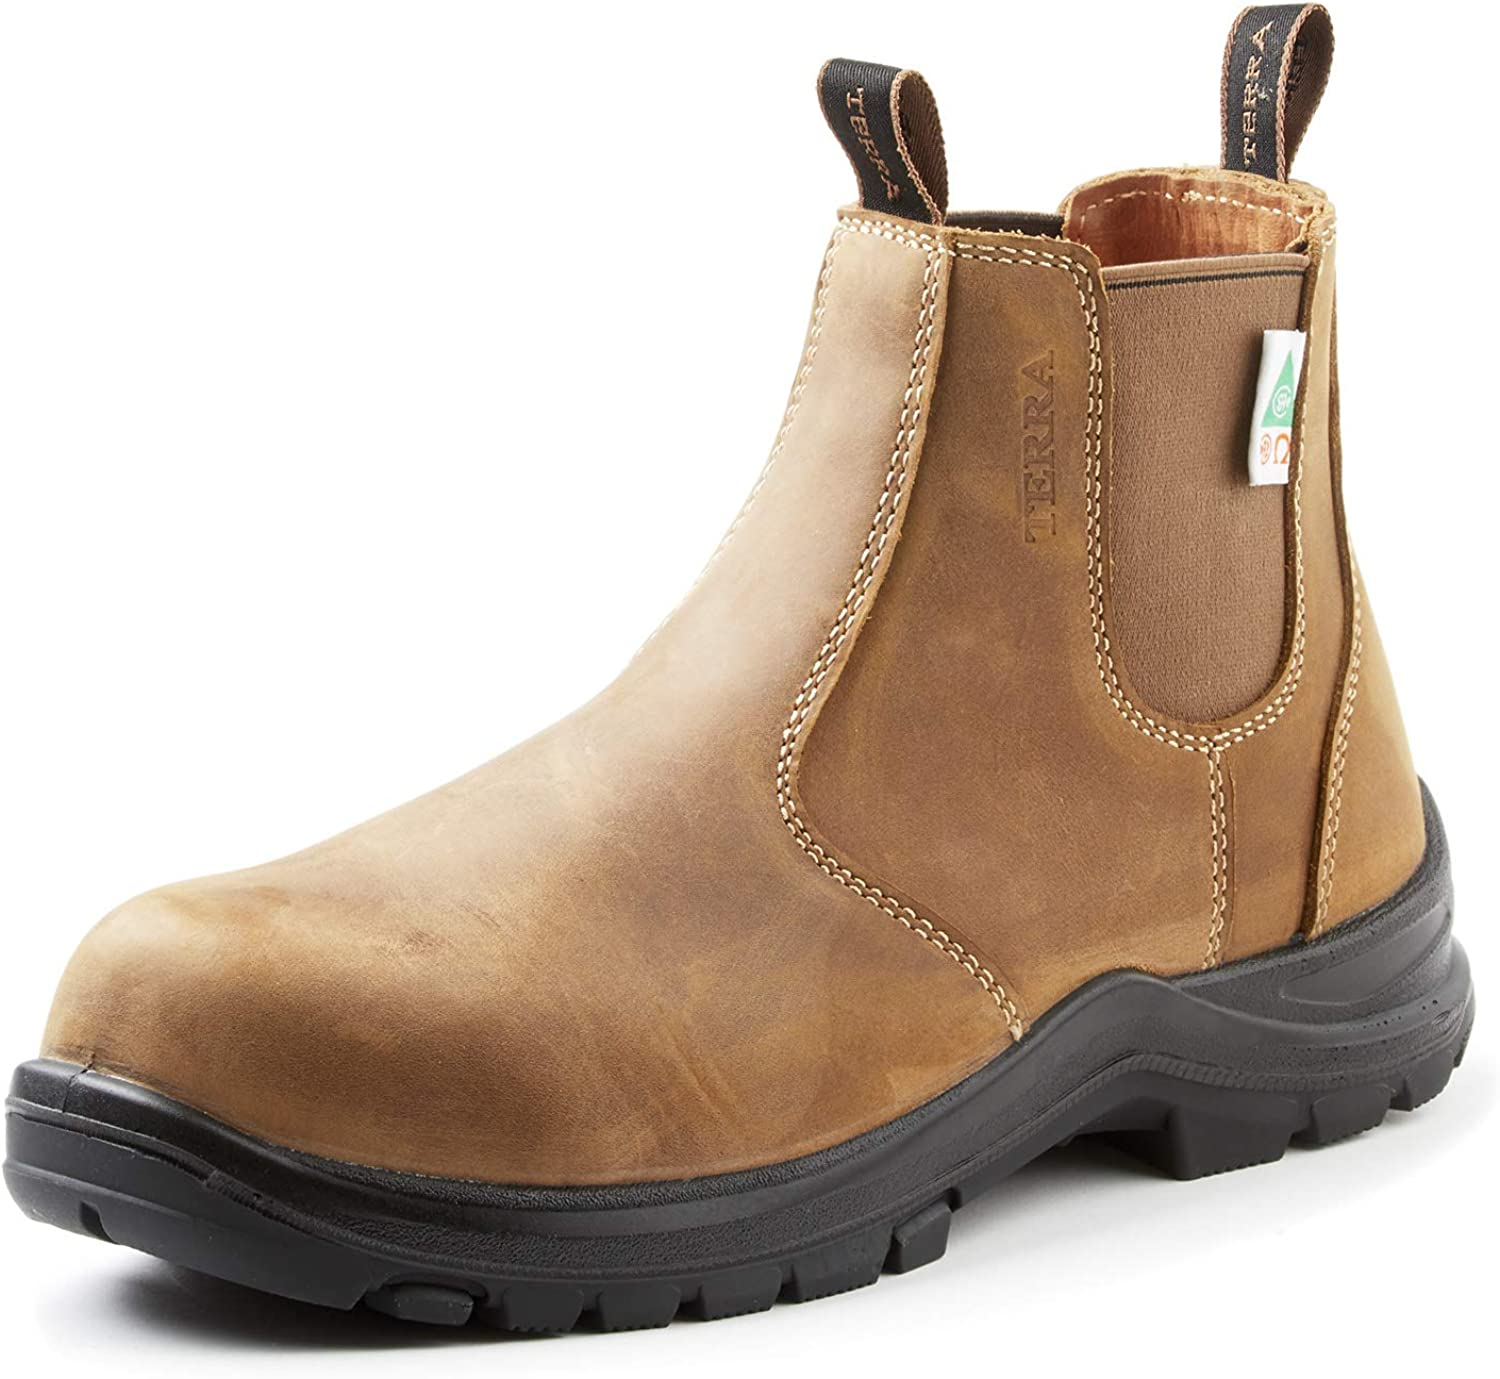 Terra Men's Murphy Chelsea Pull on Composite Safety Toe Eh Puncture Resistant Industrial Boot